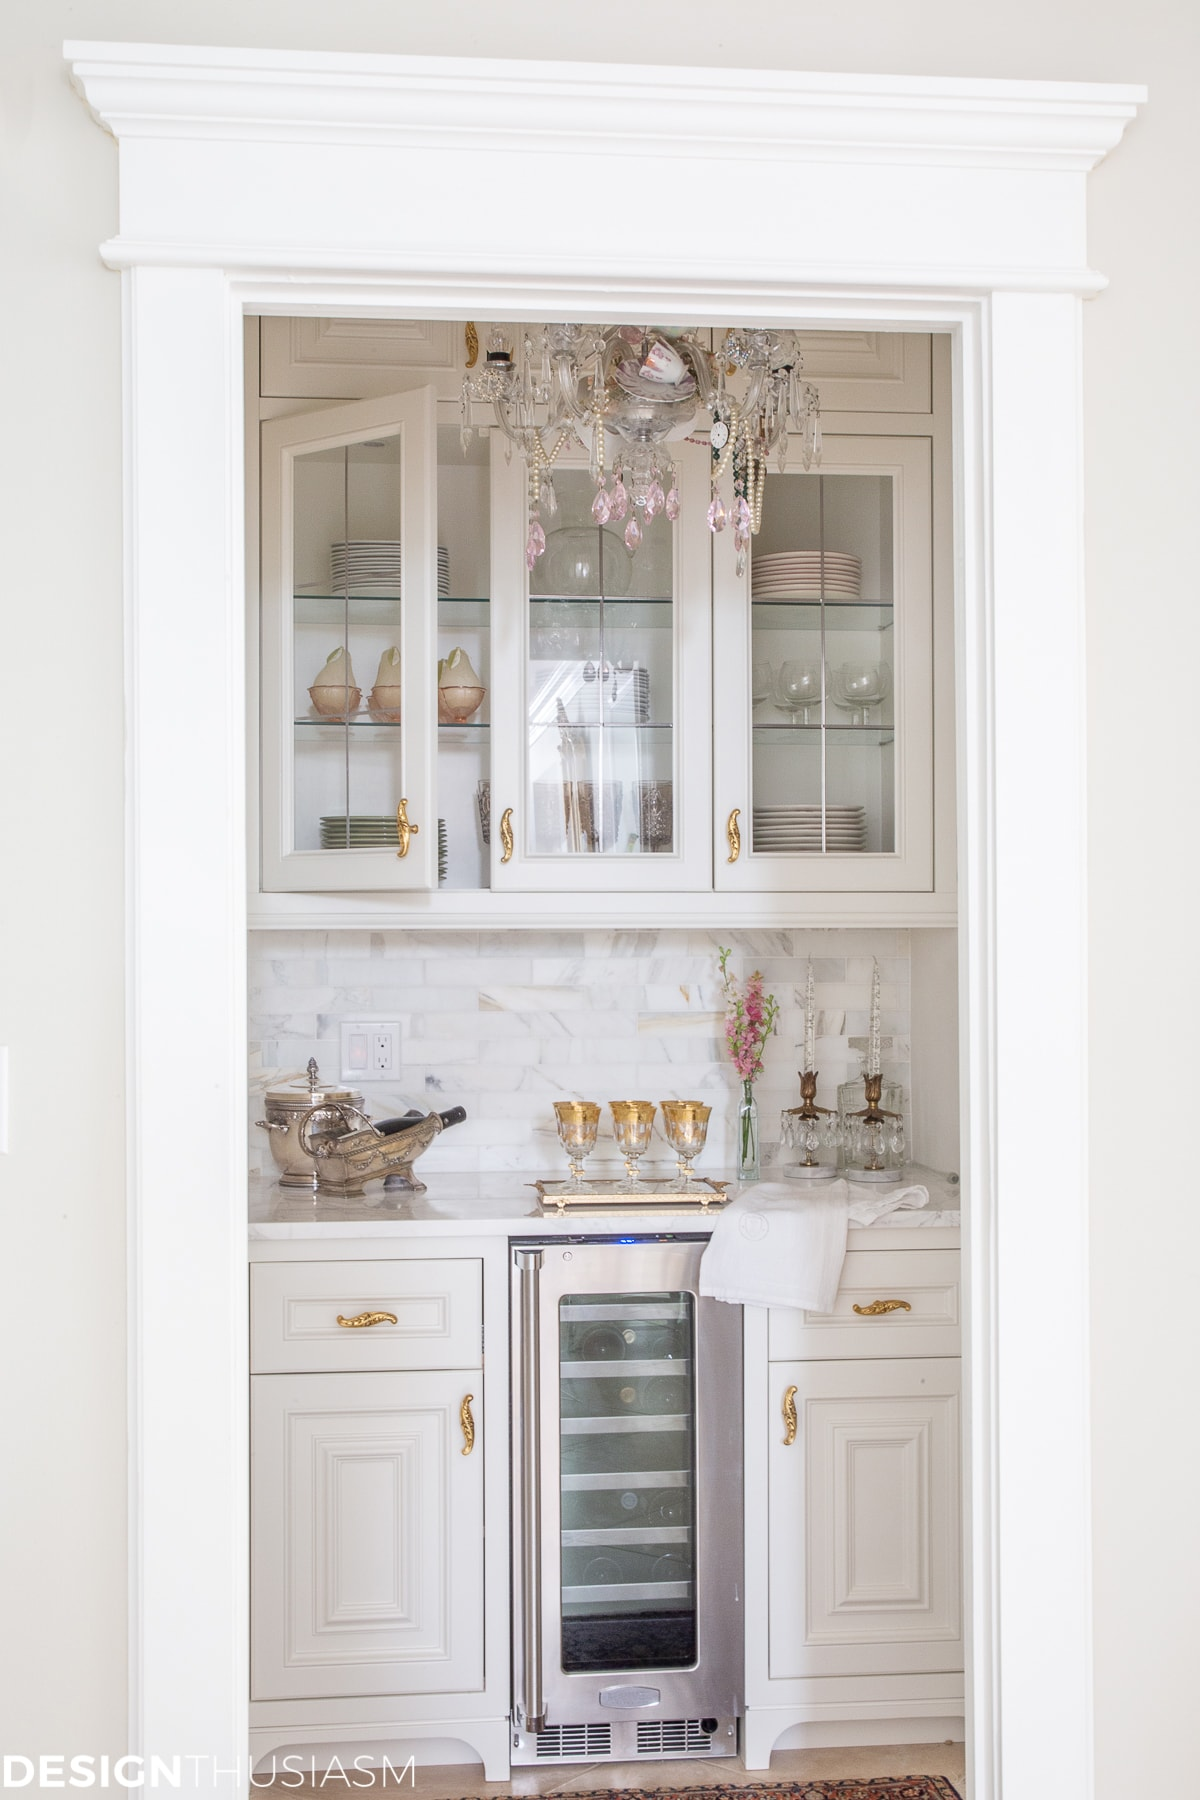 butler's pantry in a french country home